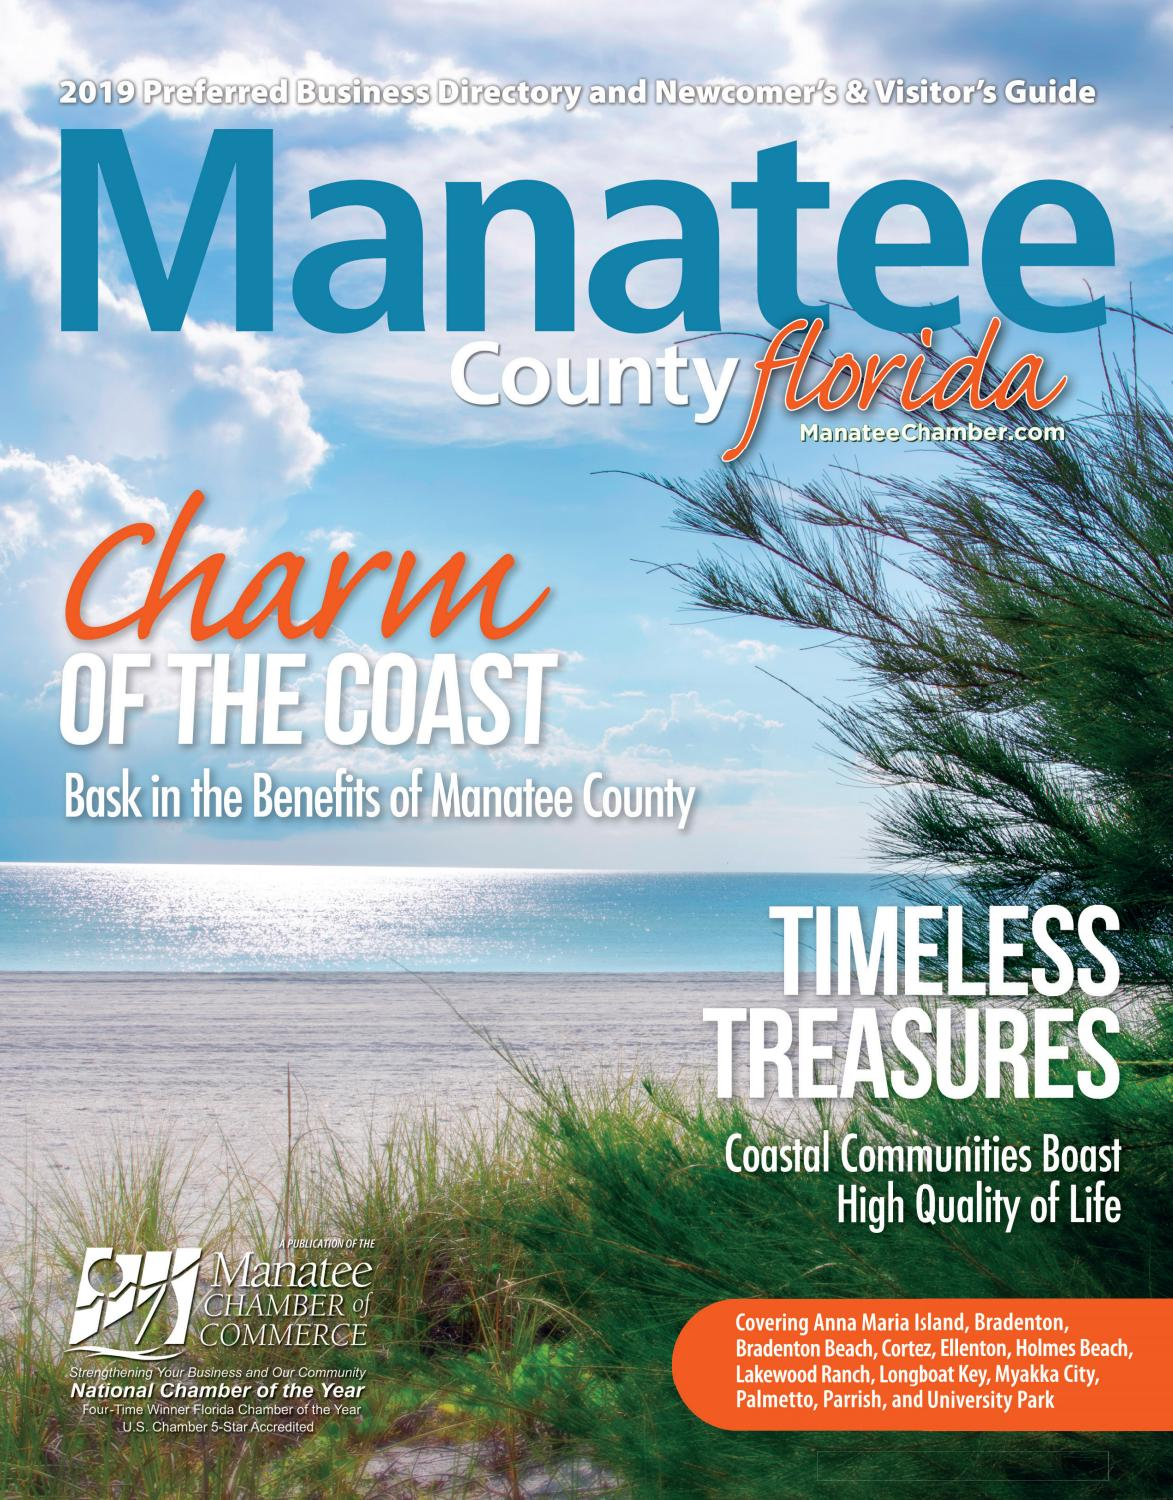 Manatee County FL Community Profile by Town Square